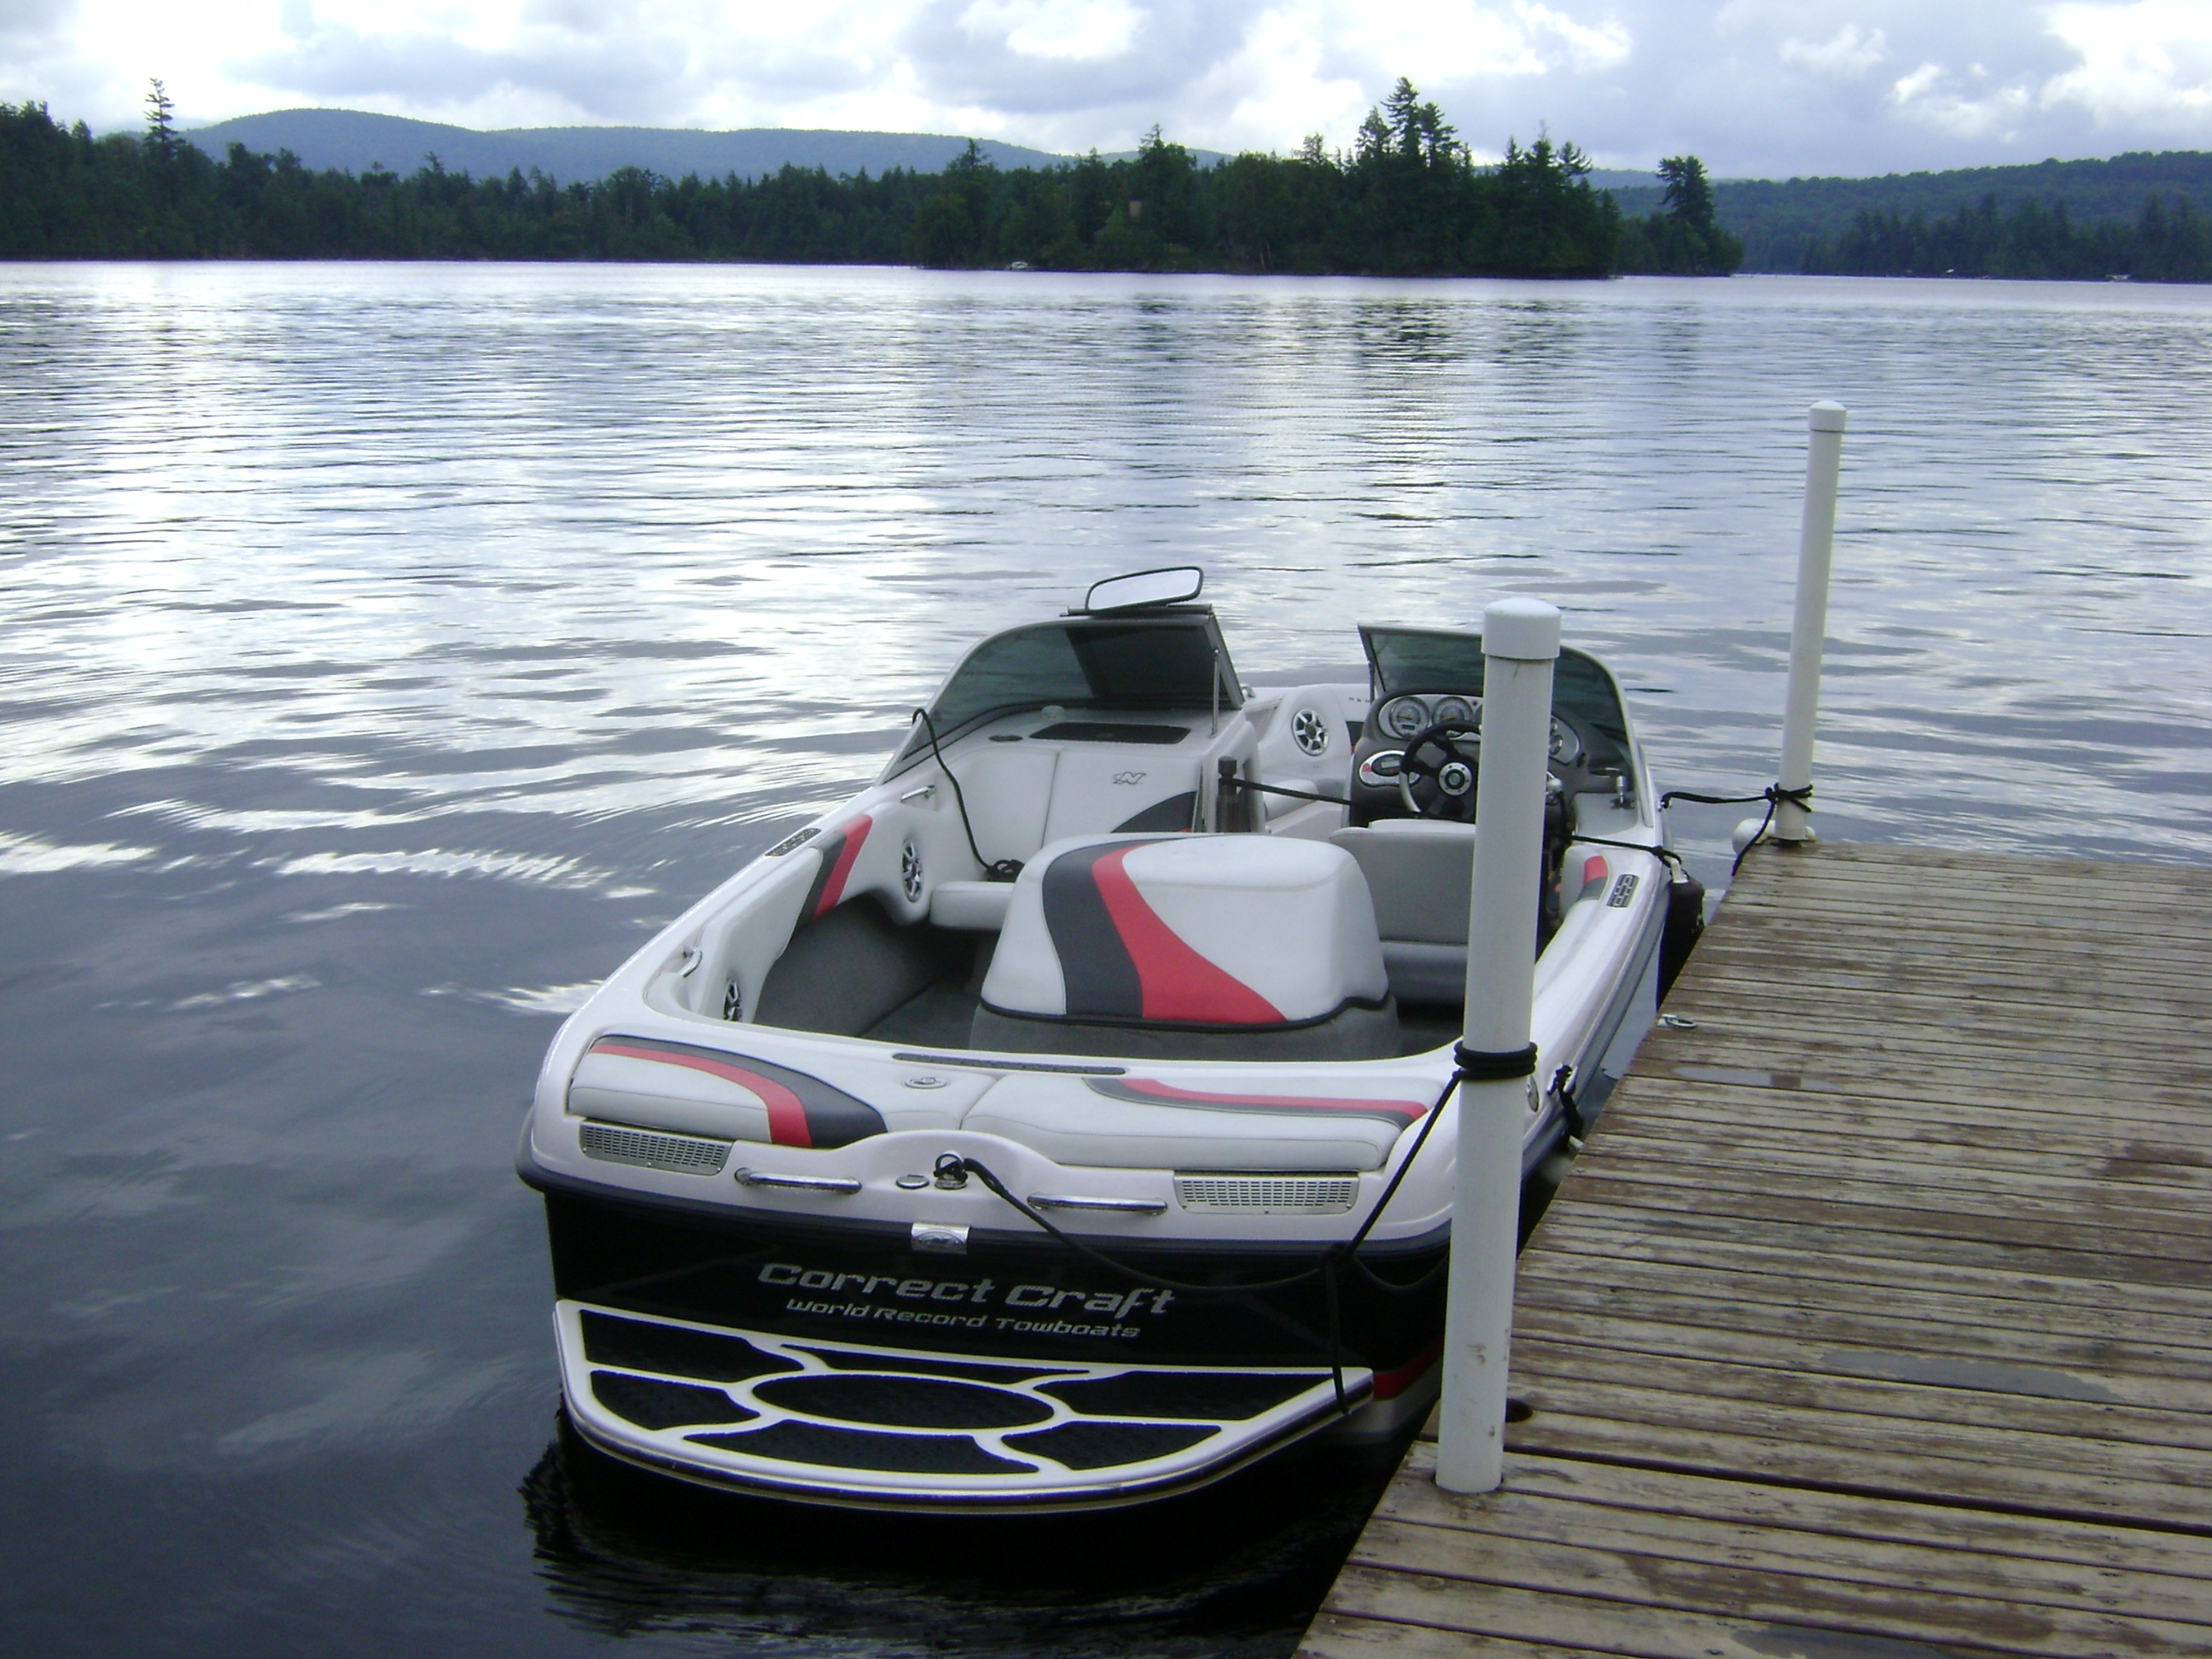 2006 Ski Nautique 206LE ZR6 - PlanetNautique Forums  Moomba Indmar Wiring Diagram on indmar wiring harness, indmar engine diagram, indmar marine wiring, indmar engine manual, indmar 5.7 mpi, indmar monsoon relay diagram 96, indmar 5.7 engine wiring, filtration system diagrams,